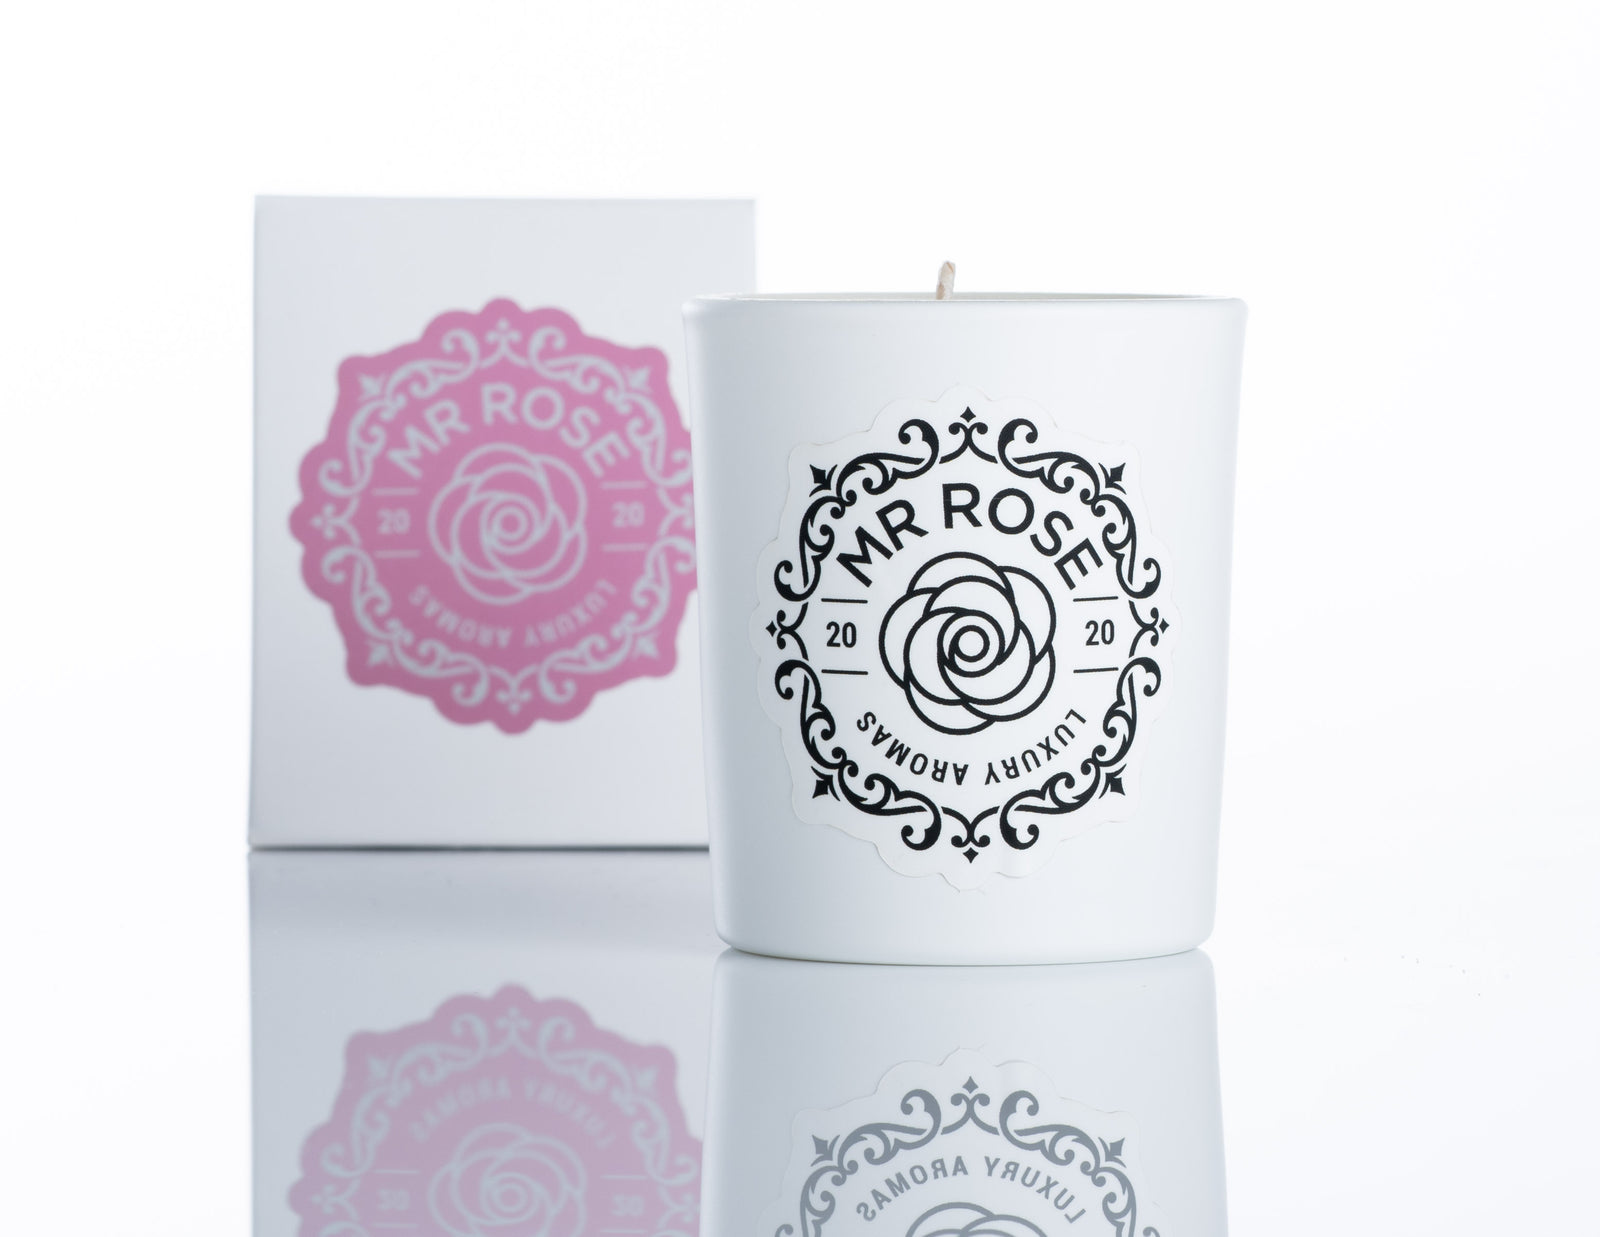 Mr Rose - Peony Blush Candle Mini/Travel